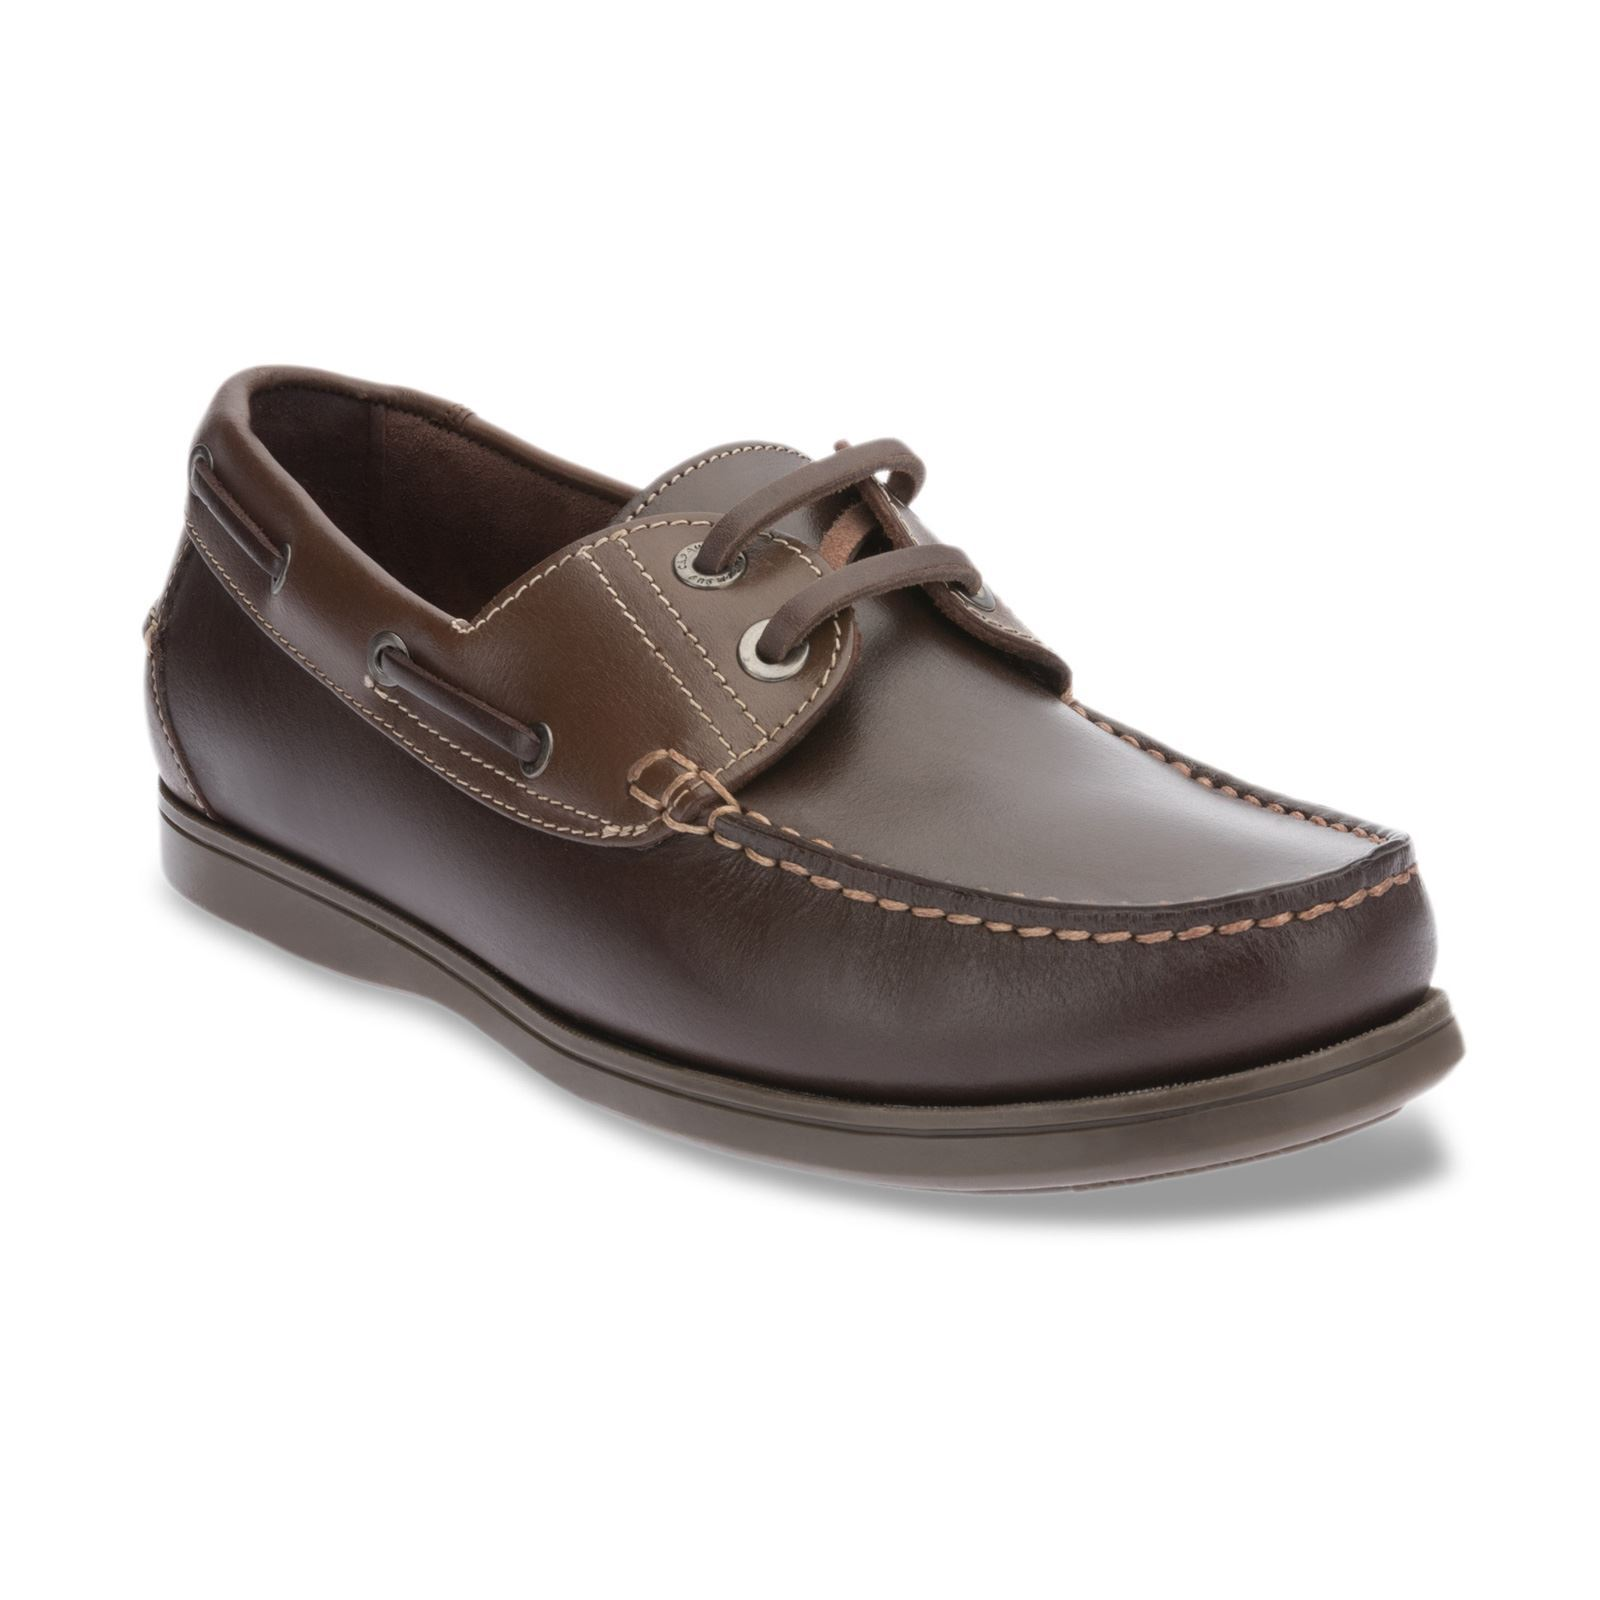 Bardage Exterieur Occasion Bardage Chaussures Bateau En Cuir Marron Brandalley